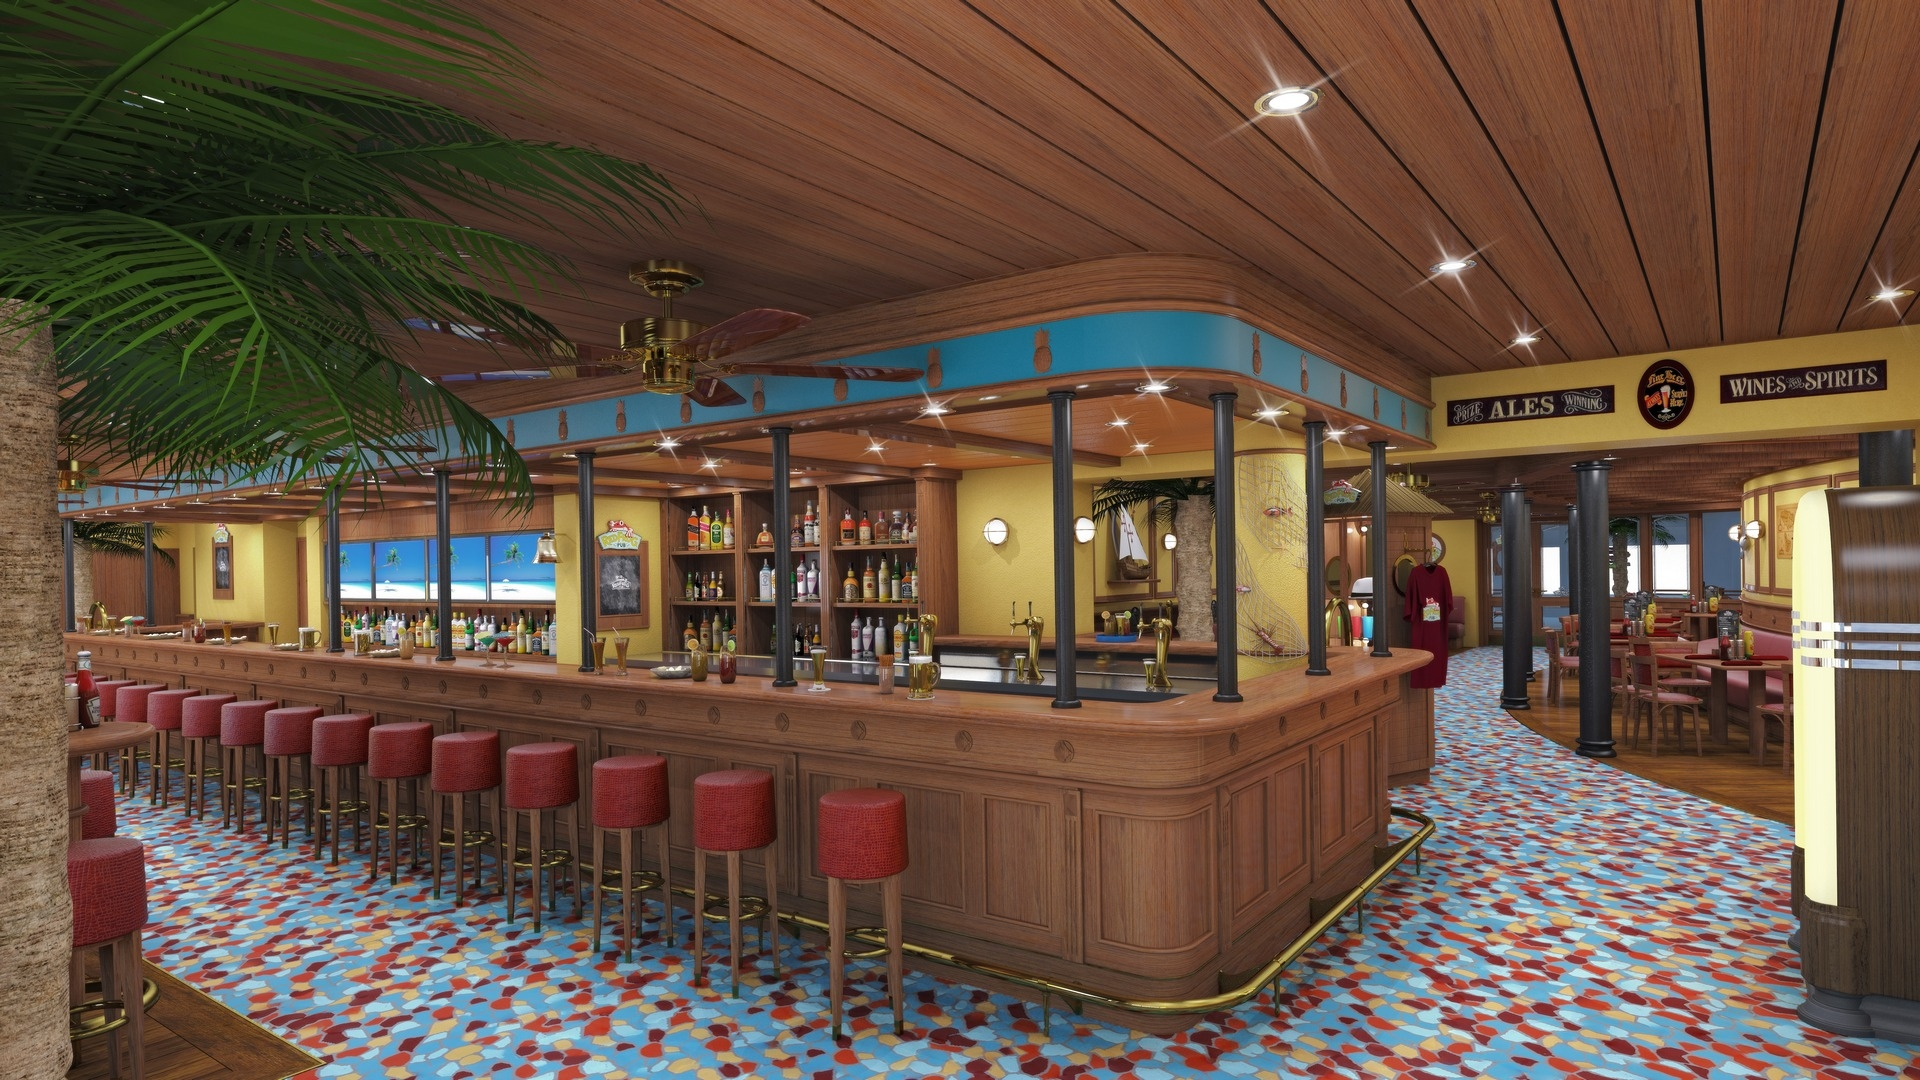 Carnival's Red Frog Pub, Onboard Crew Food, and Port Manning